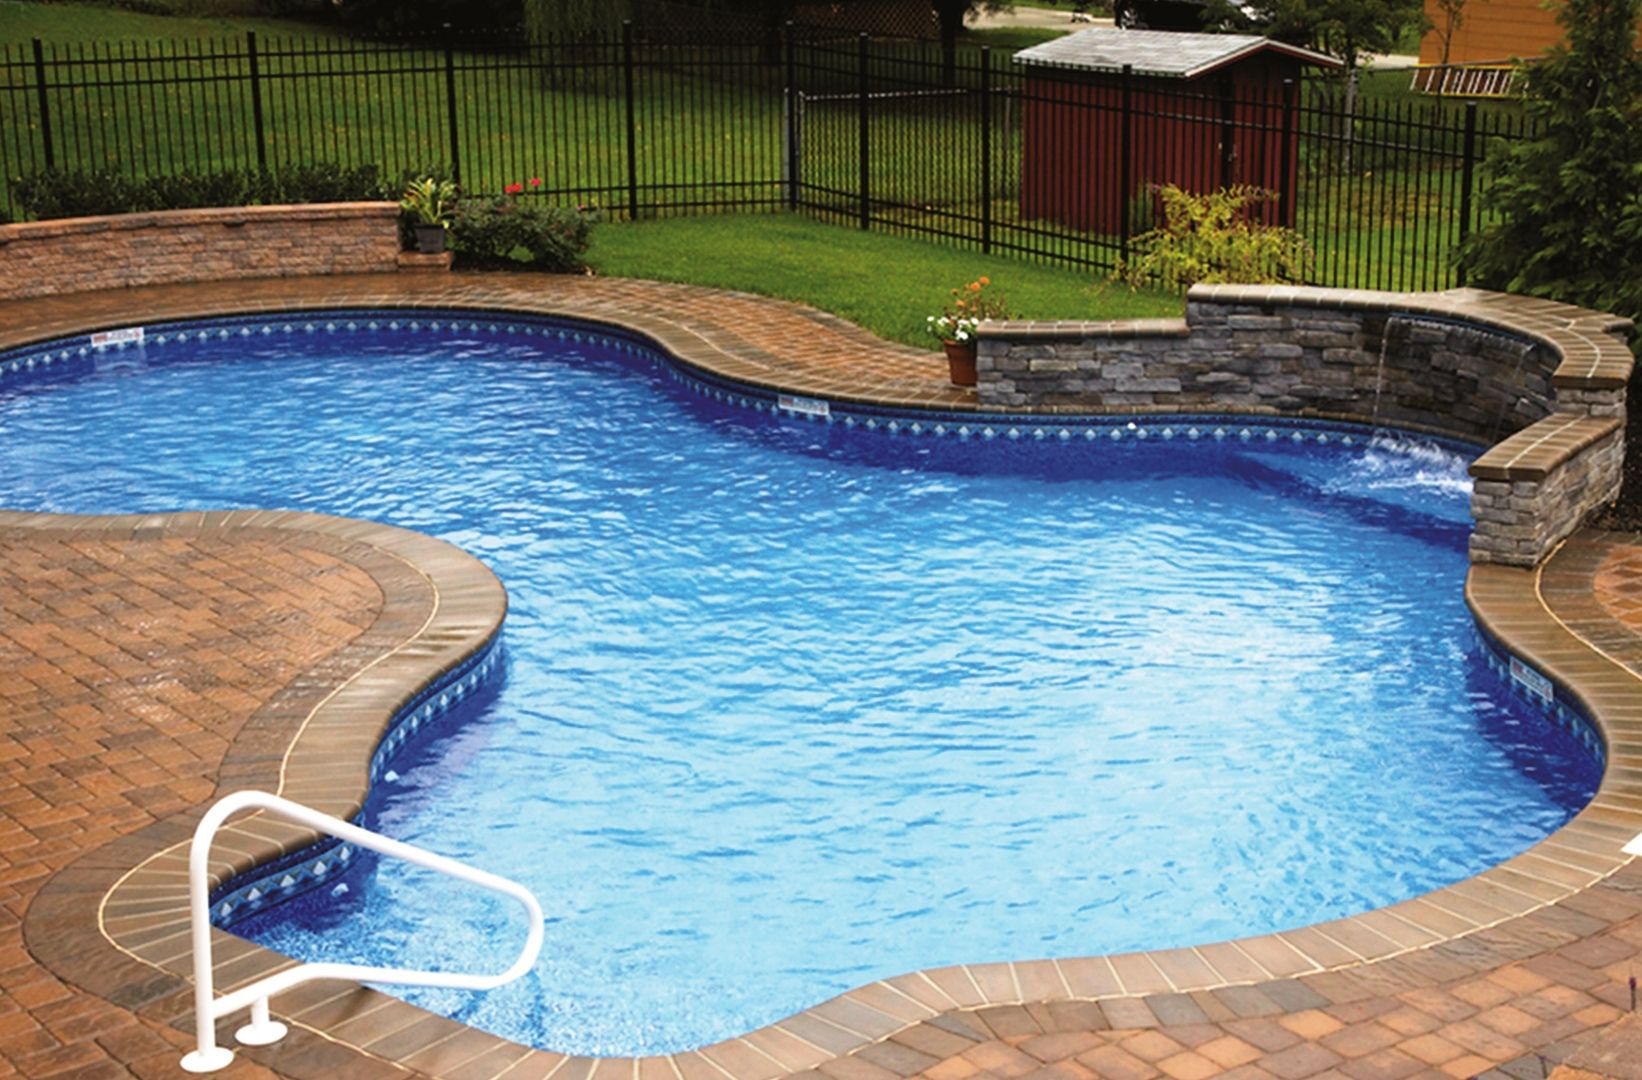 Back yard swimming pool ideas swimming pool design for Pool ideas for small backyard